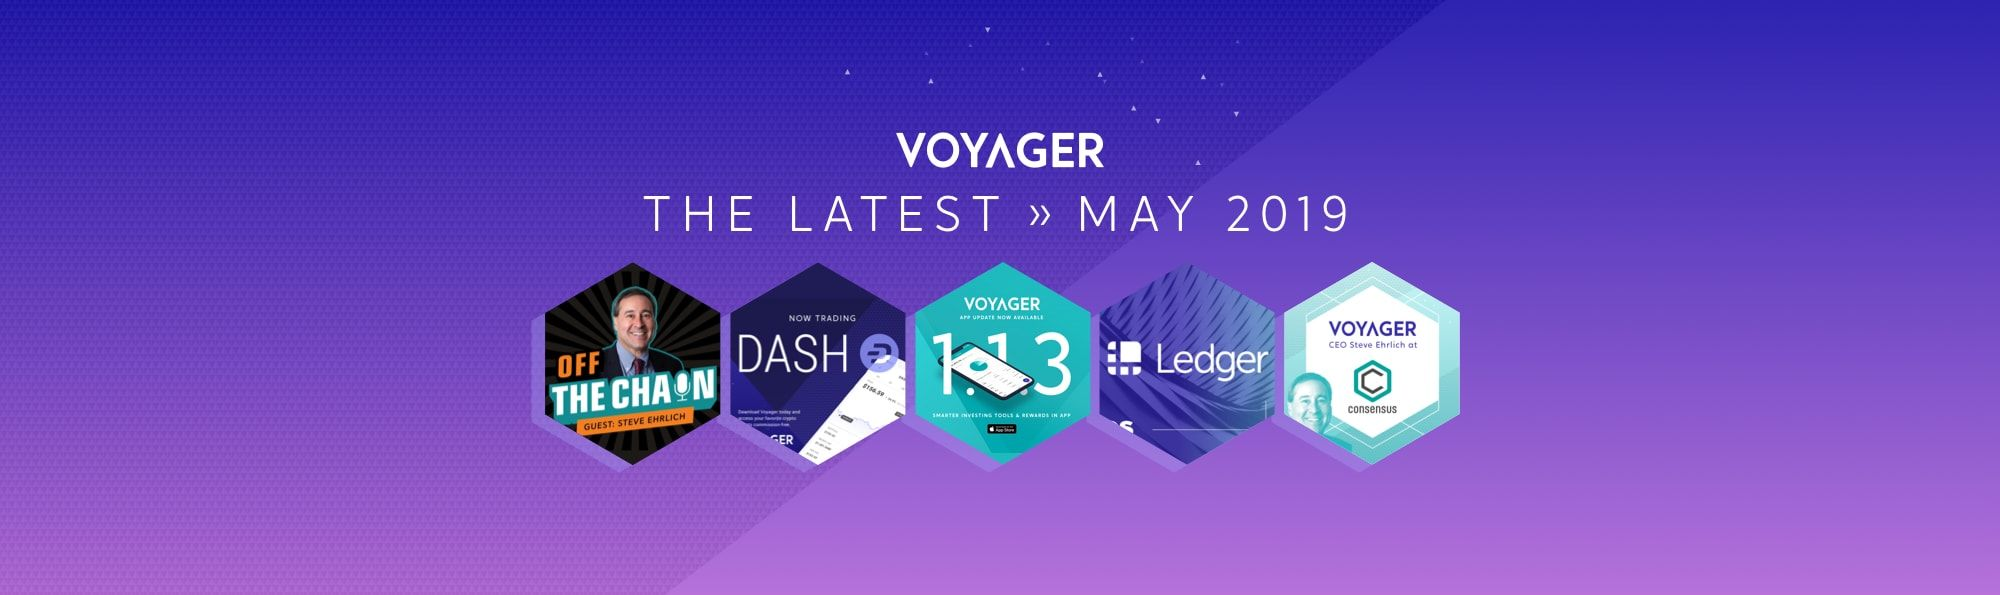 Voyager S Top Moments Of May